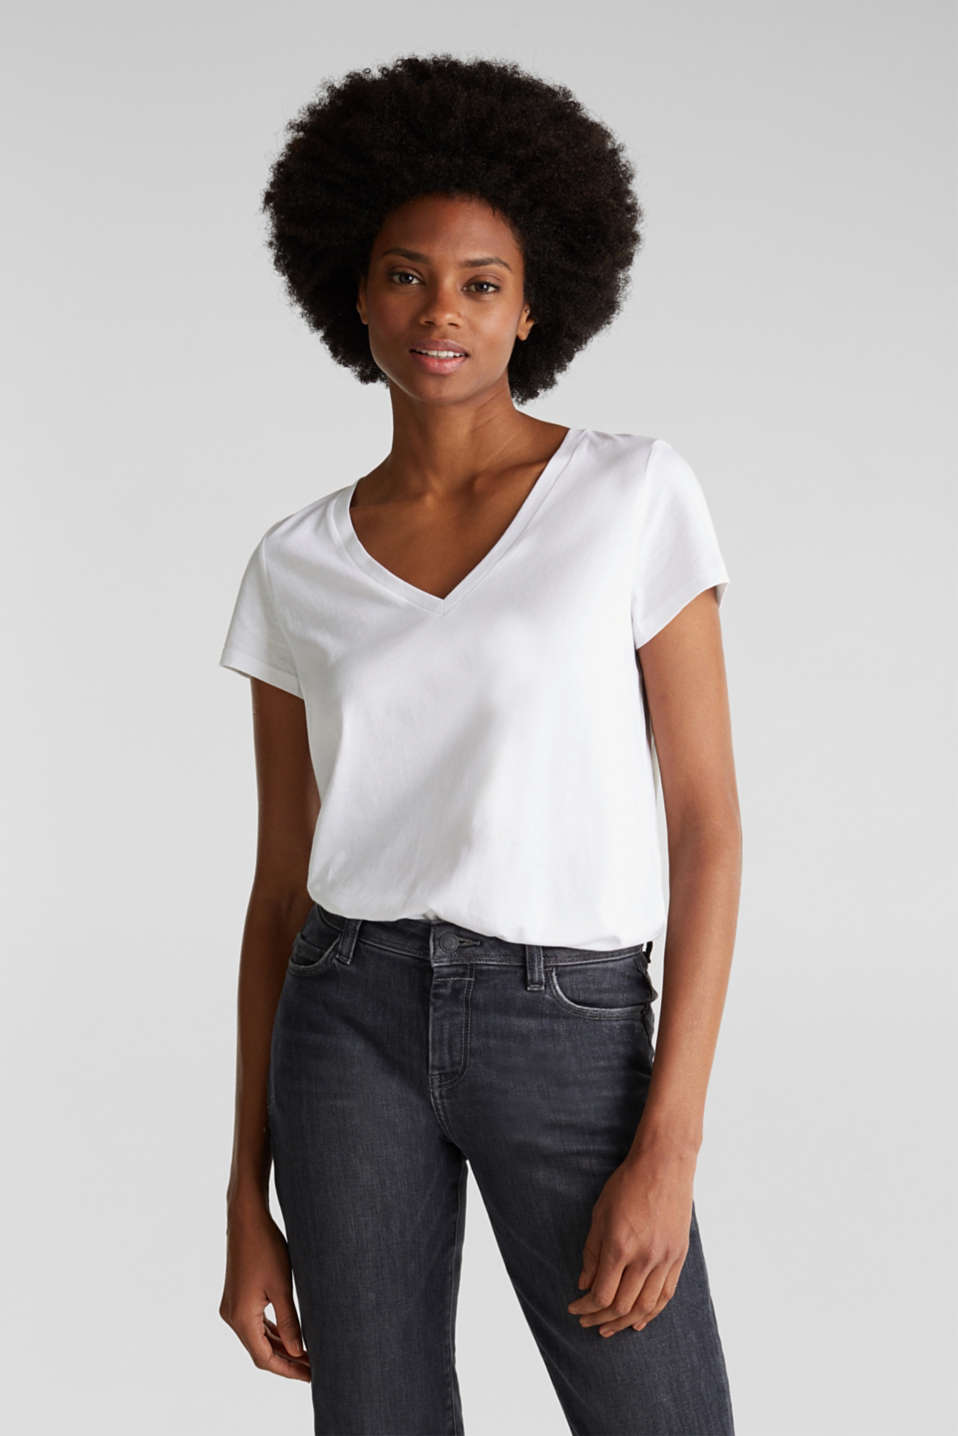 Esprit - V-neck top made of blended cotton